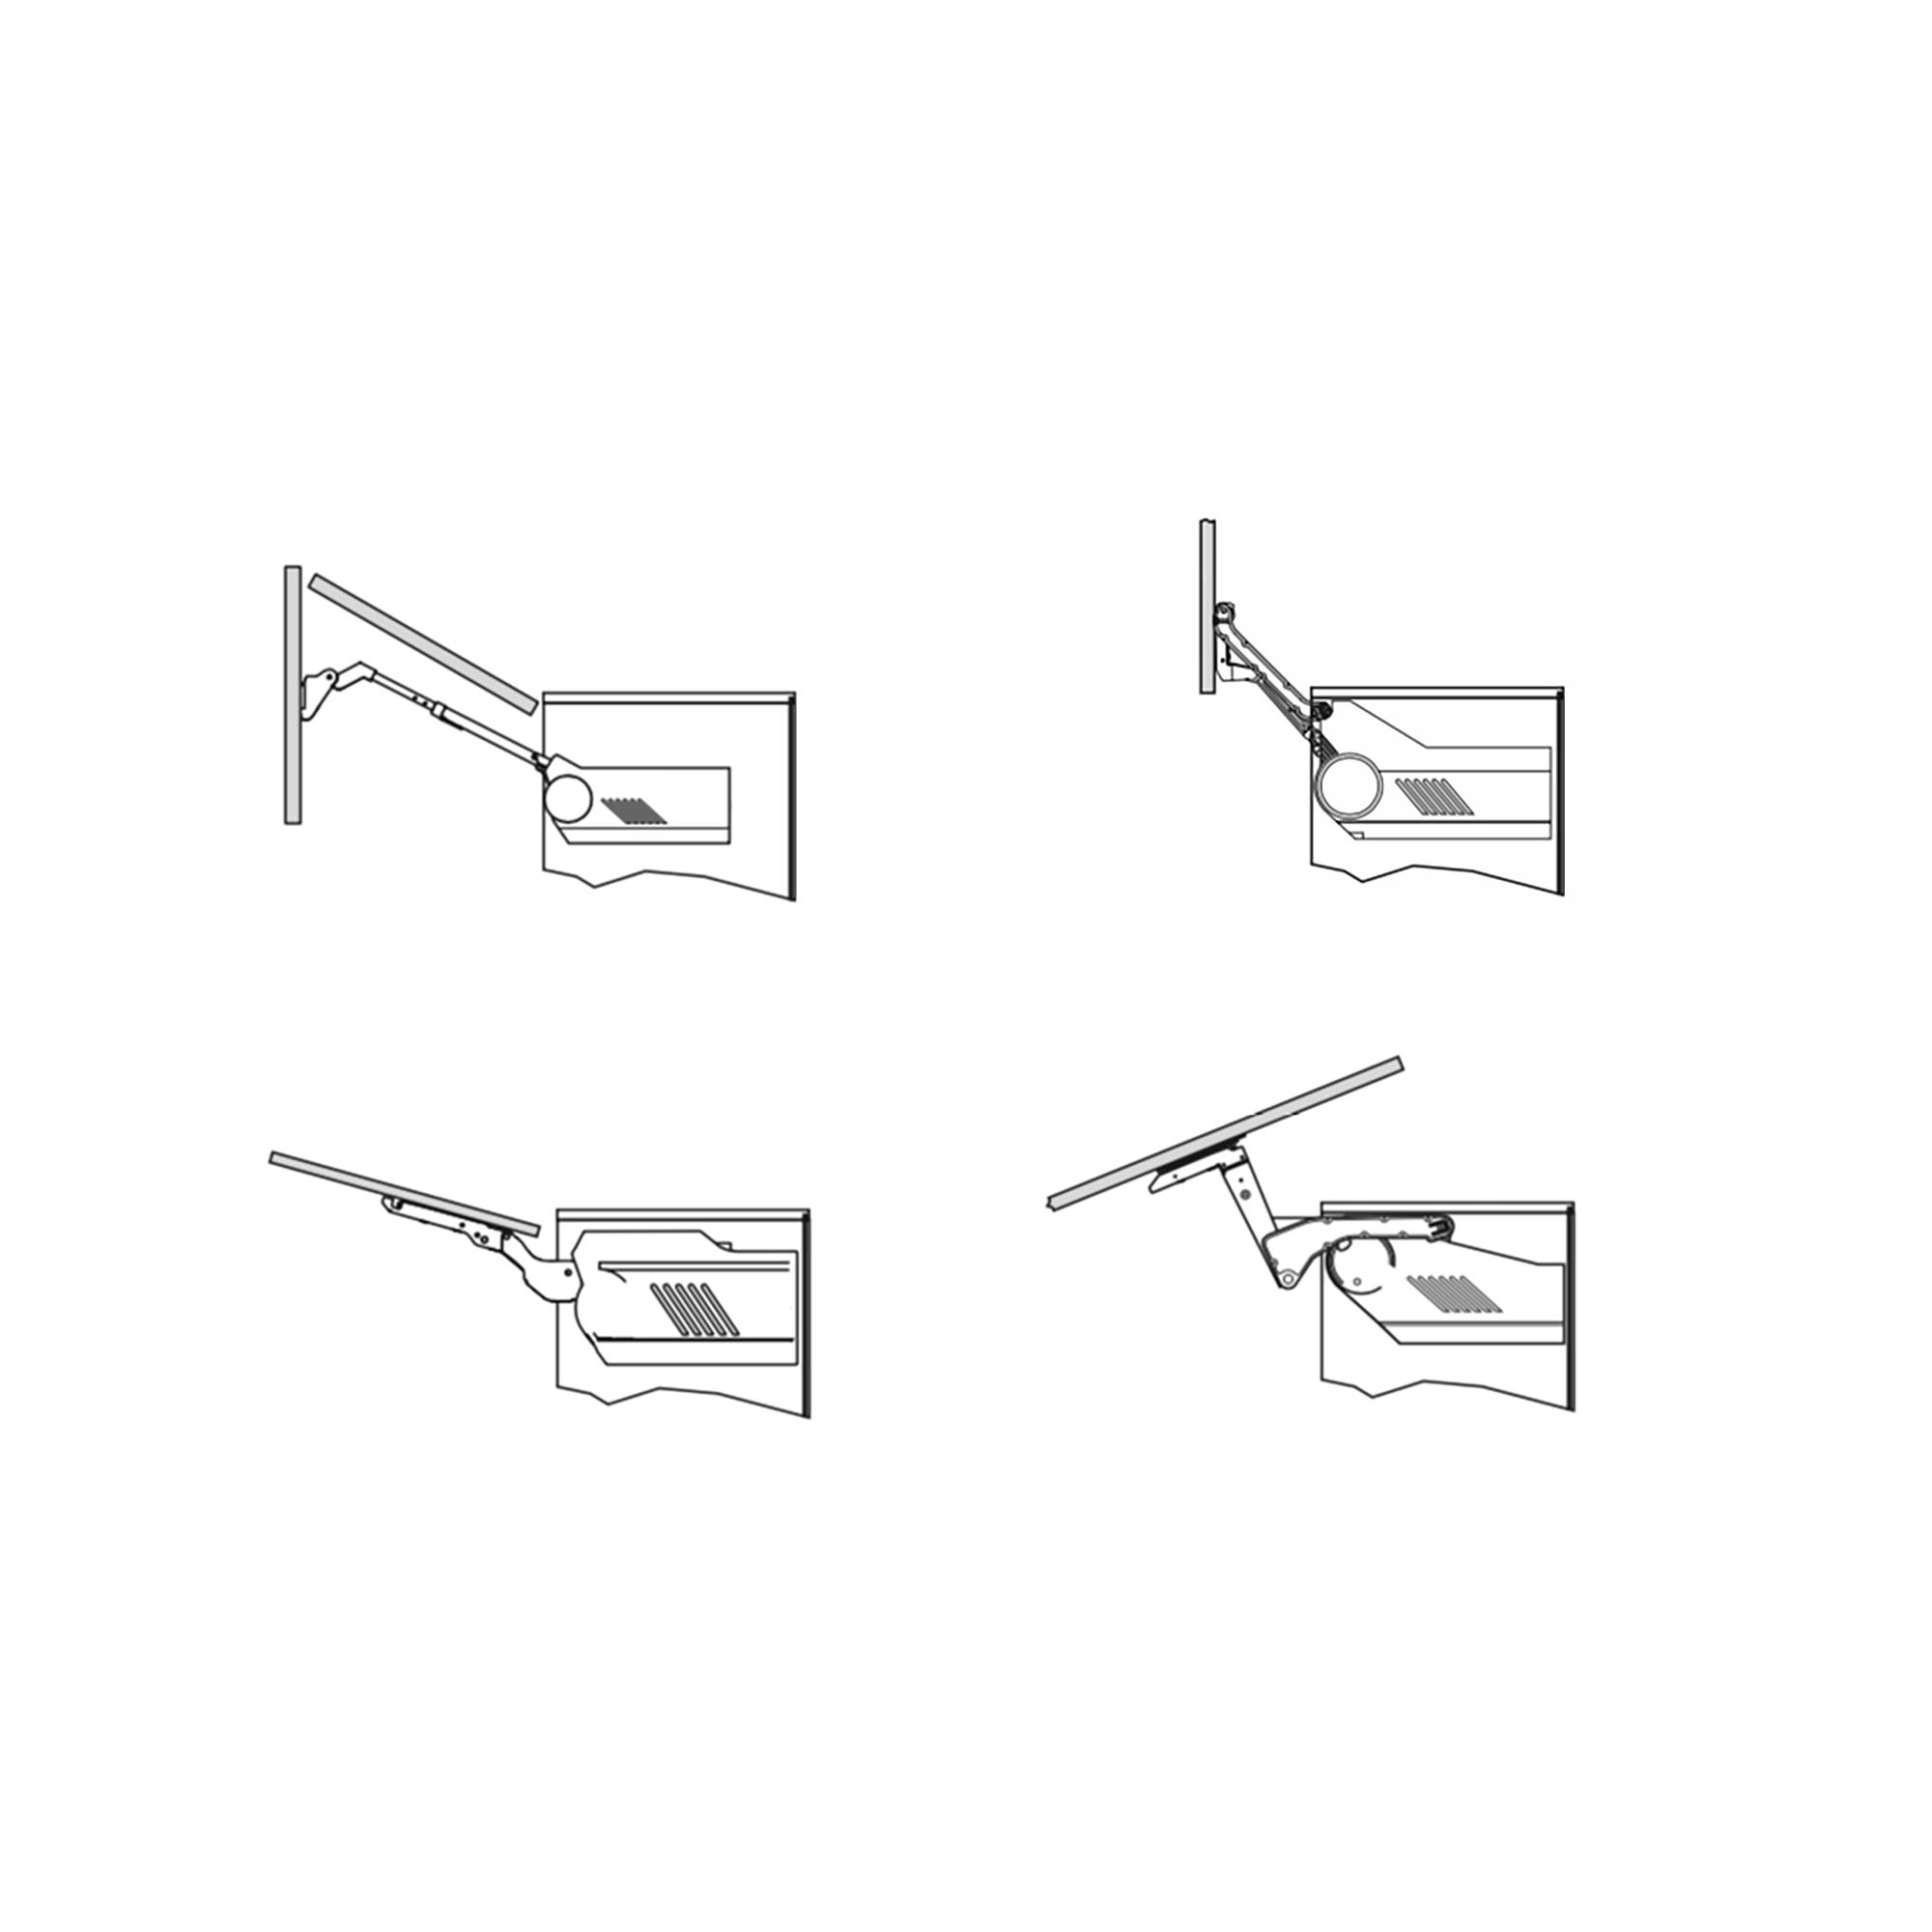 Push-catch handle and touch opening system illustration in Hubble designer kitchen